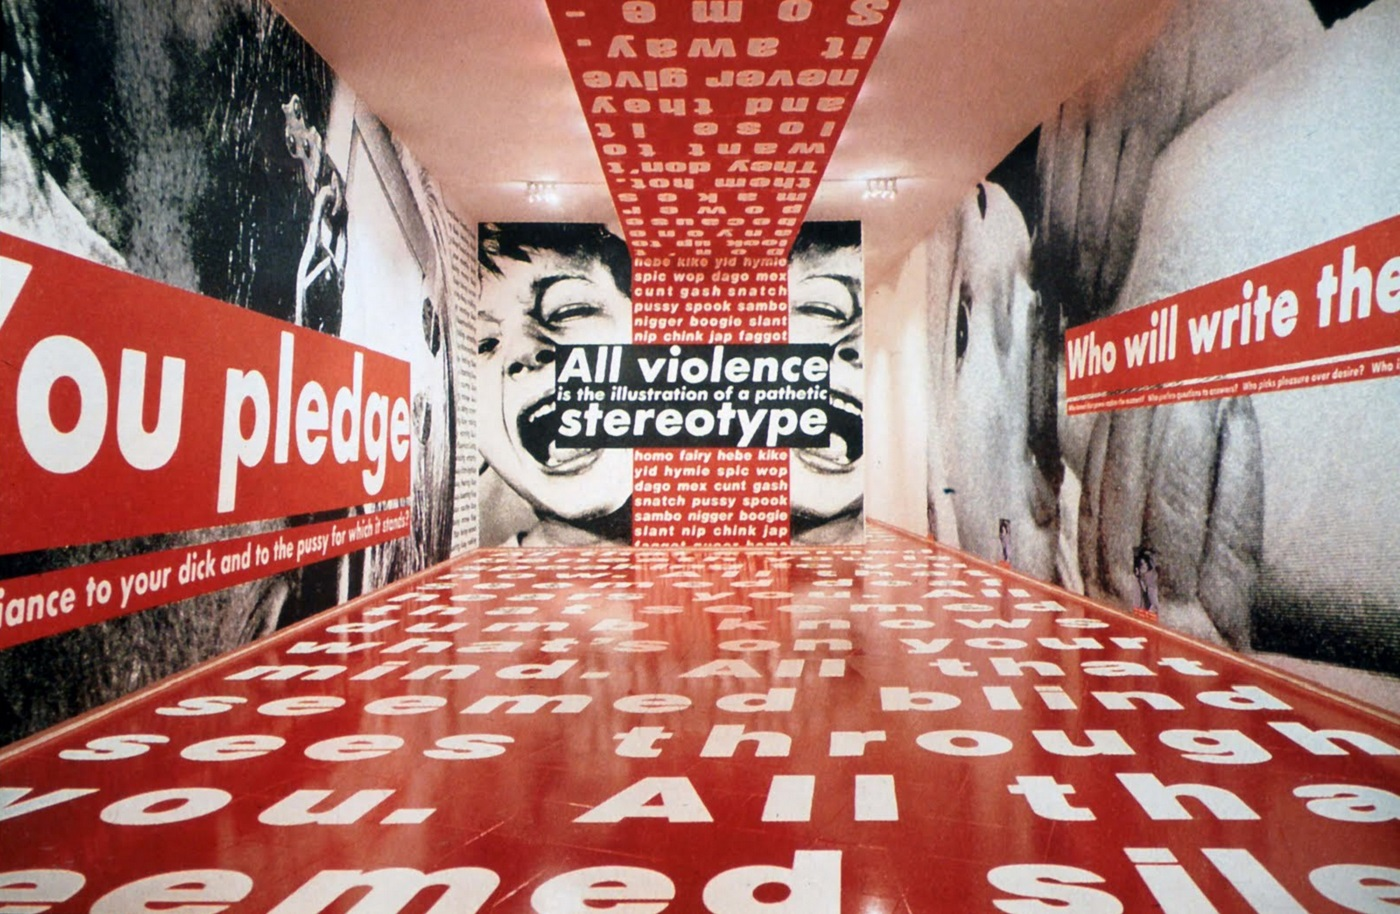 Barbara Kruger, All Violence Stereotype, 1991